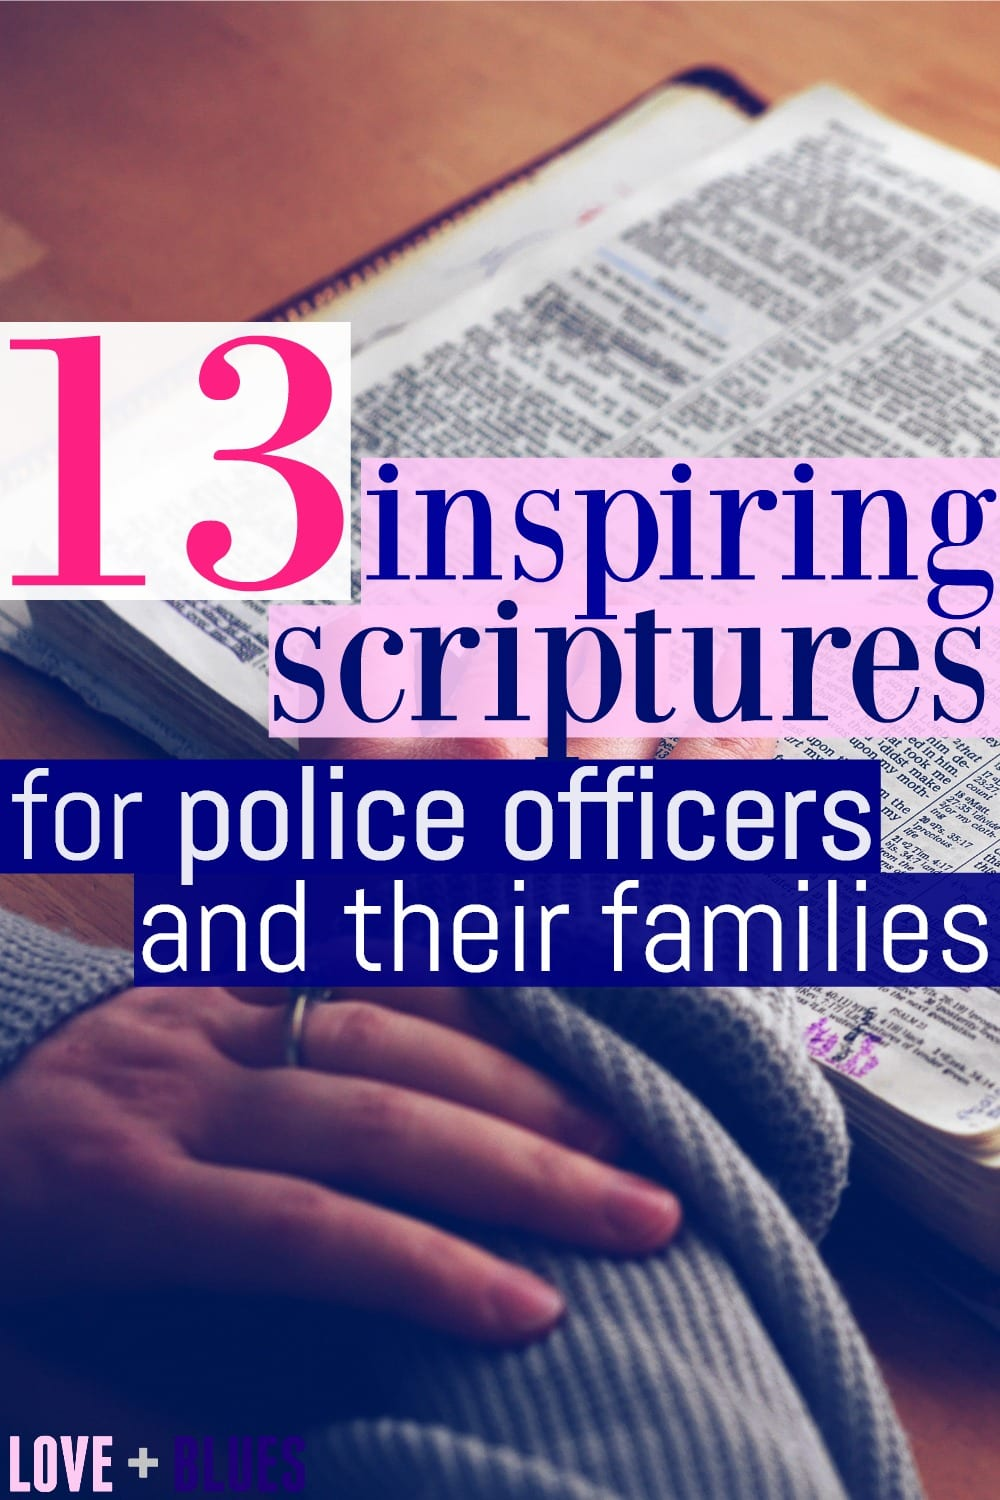 Great list!! I think I'll highlight these in my LEO's scriptures #policewifelife #inspiration